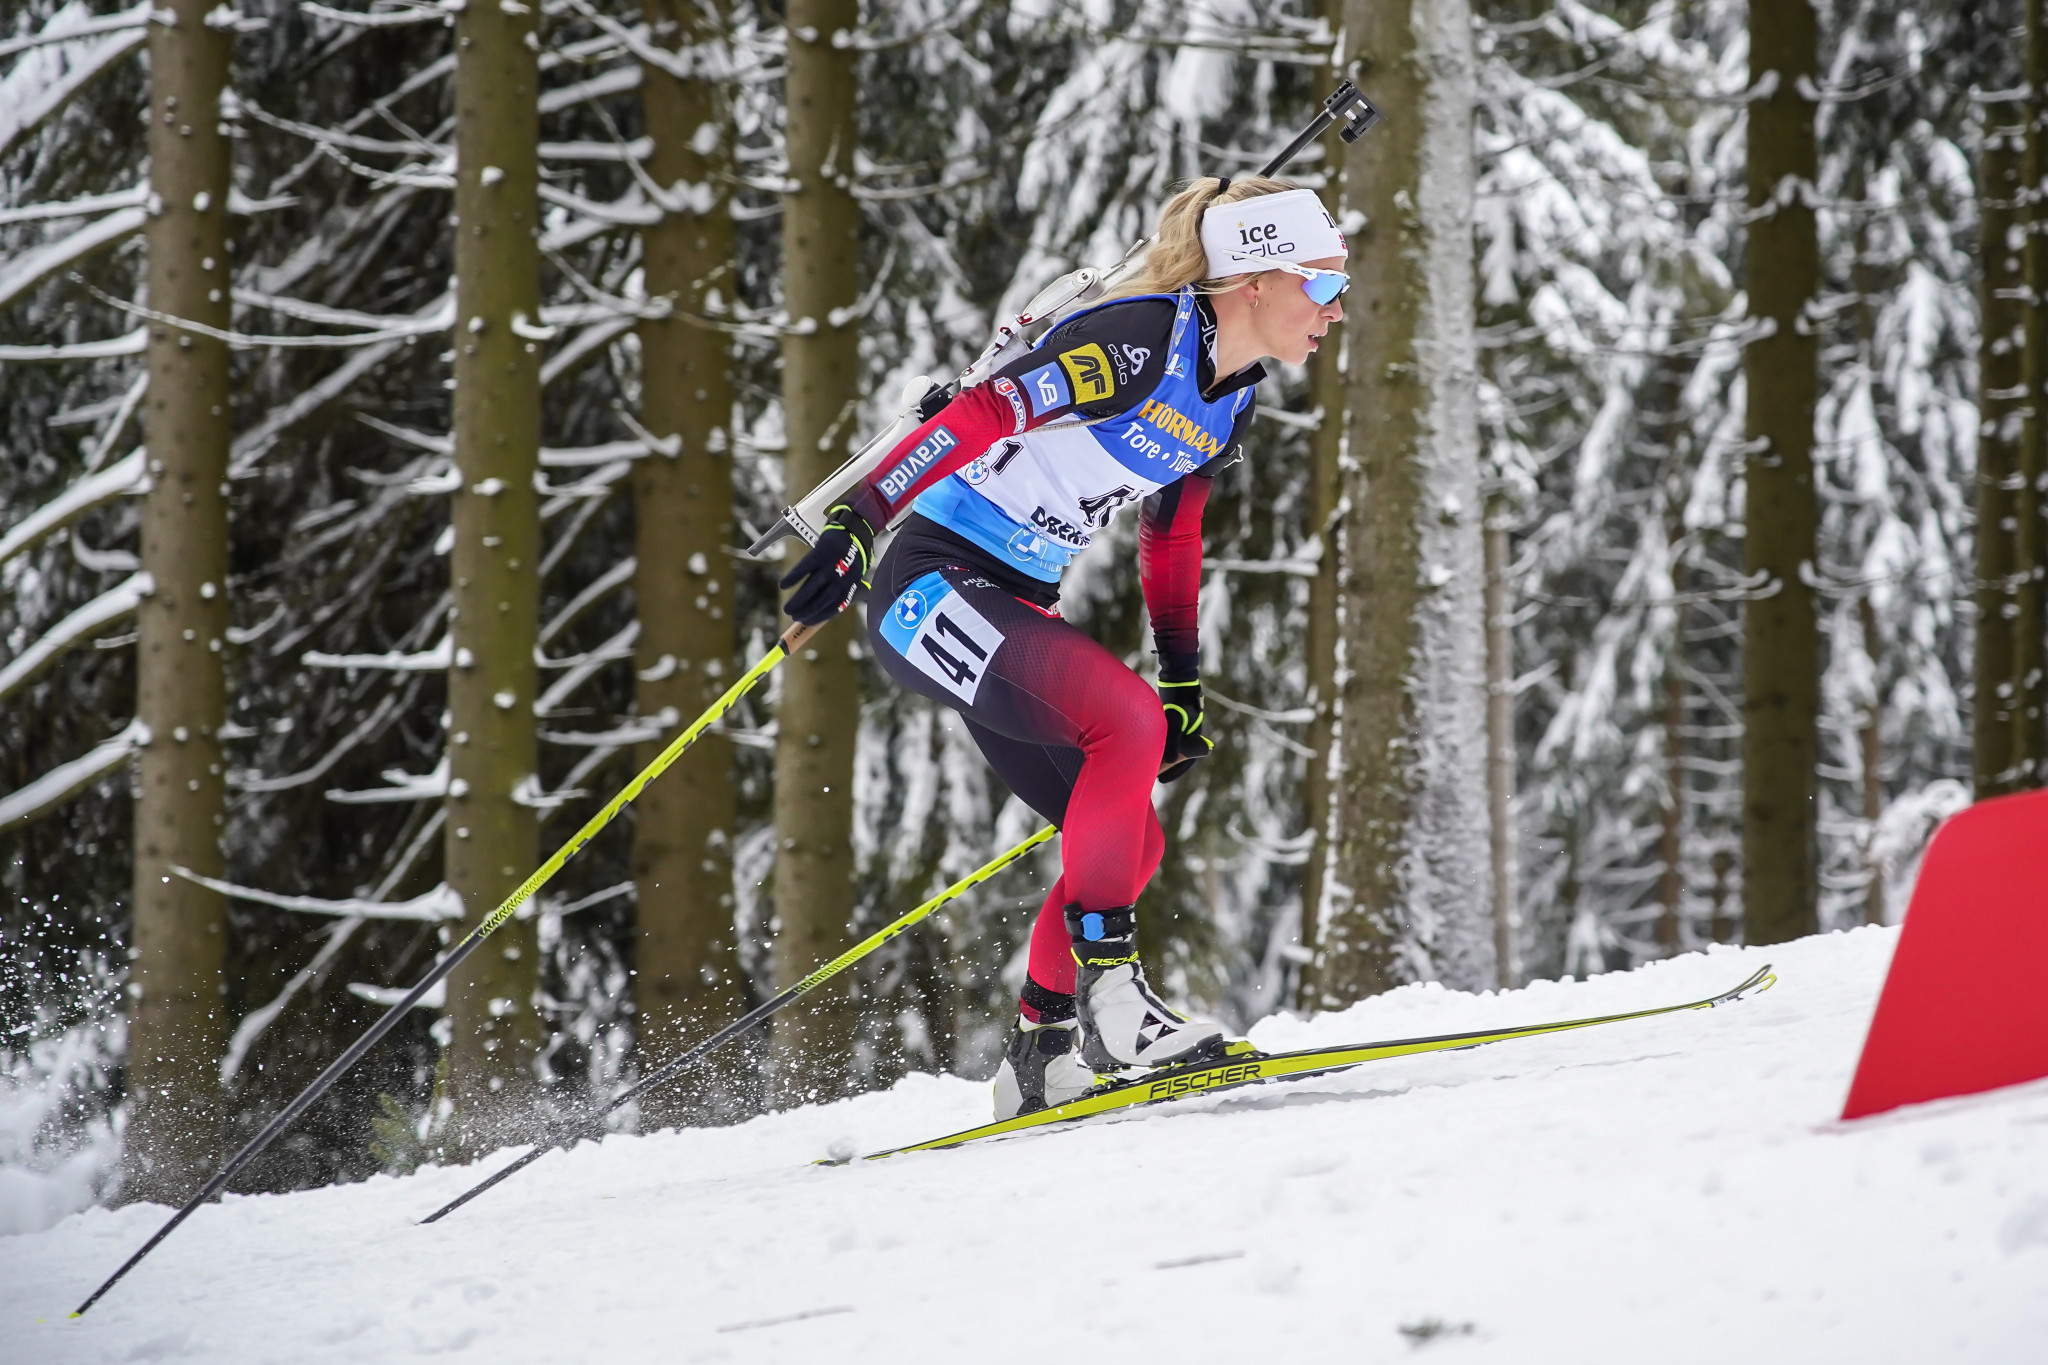 Eckhoff bidding to bounce back at IBU Biathlon World Cup in Antholz-Anterselva